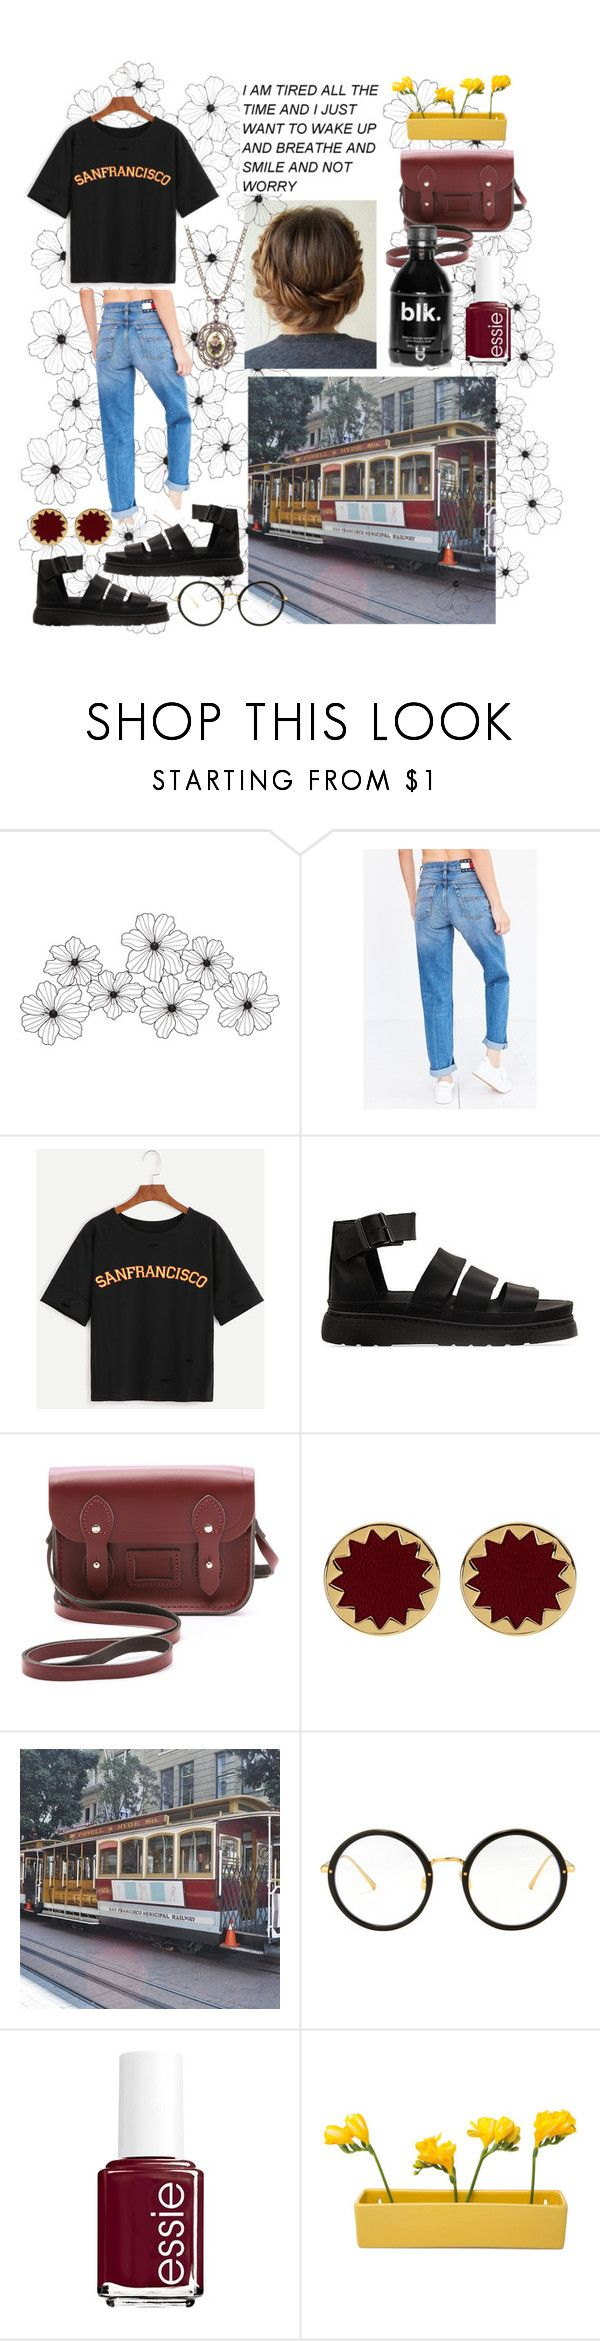 """San Francisco"" by ash-lyy ❤ liked on Polyvore featuring WALL, Tommy Hilfiger, Dr. Martens, The Cambridge Satchel Company, House of Harlow 1960, Linda Farrow, Essie, Identity, Dot & Bo and 1928"